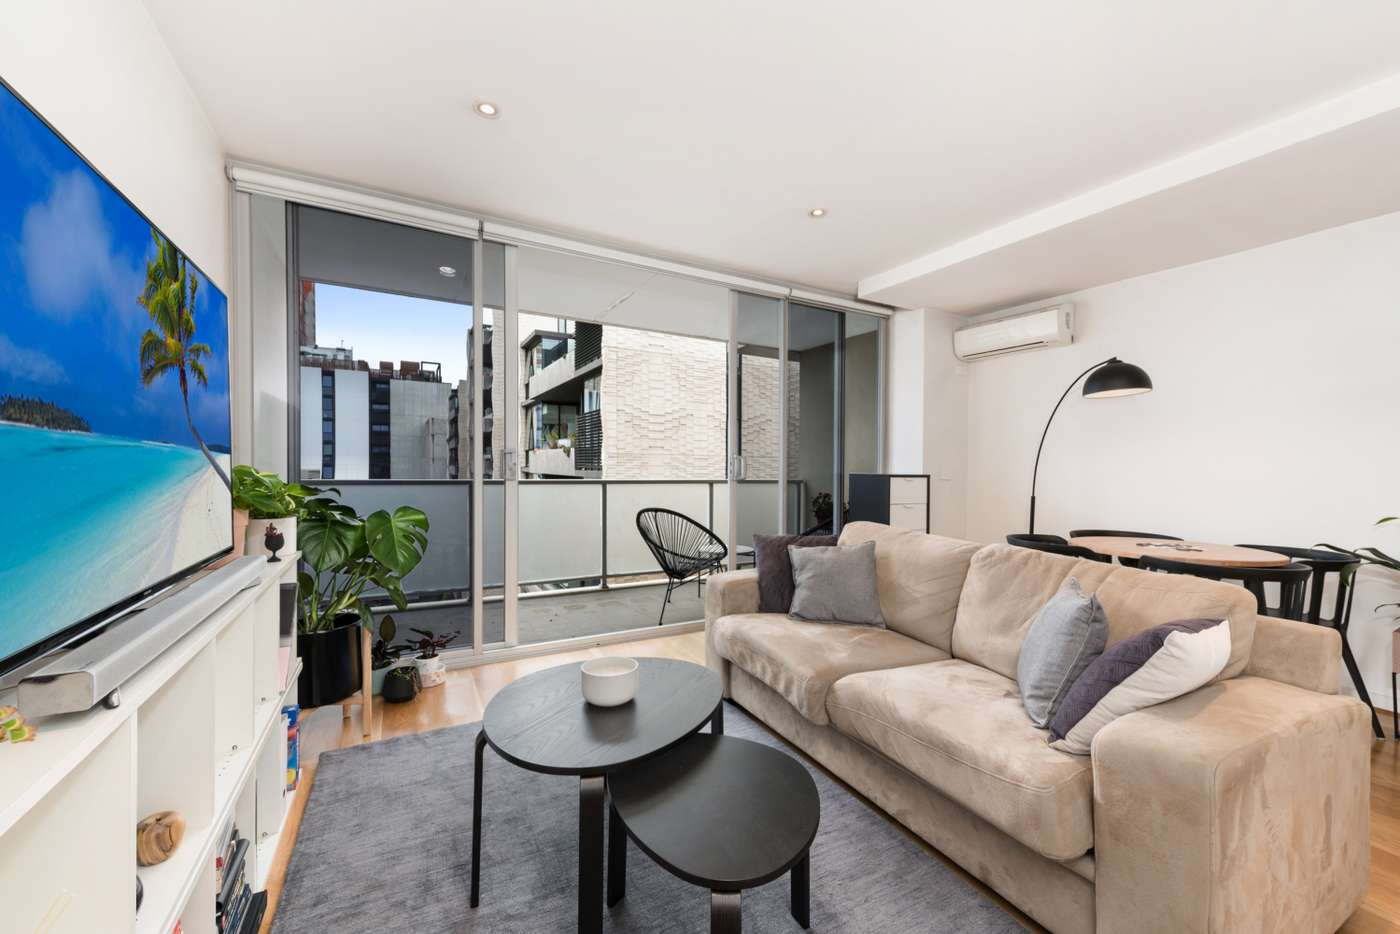 Main view of Homely apartment listing, 403/40 Stanley Street, Collingwood VIC 3066